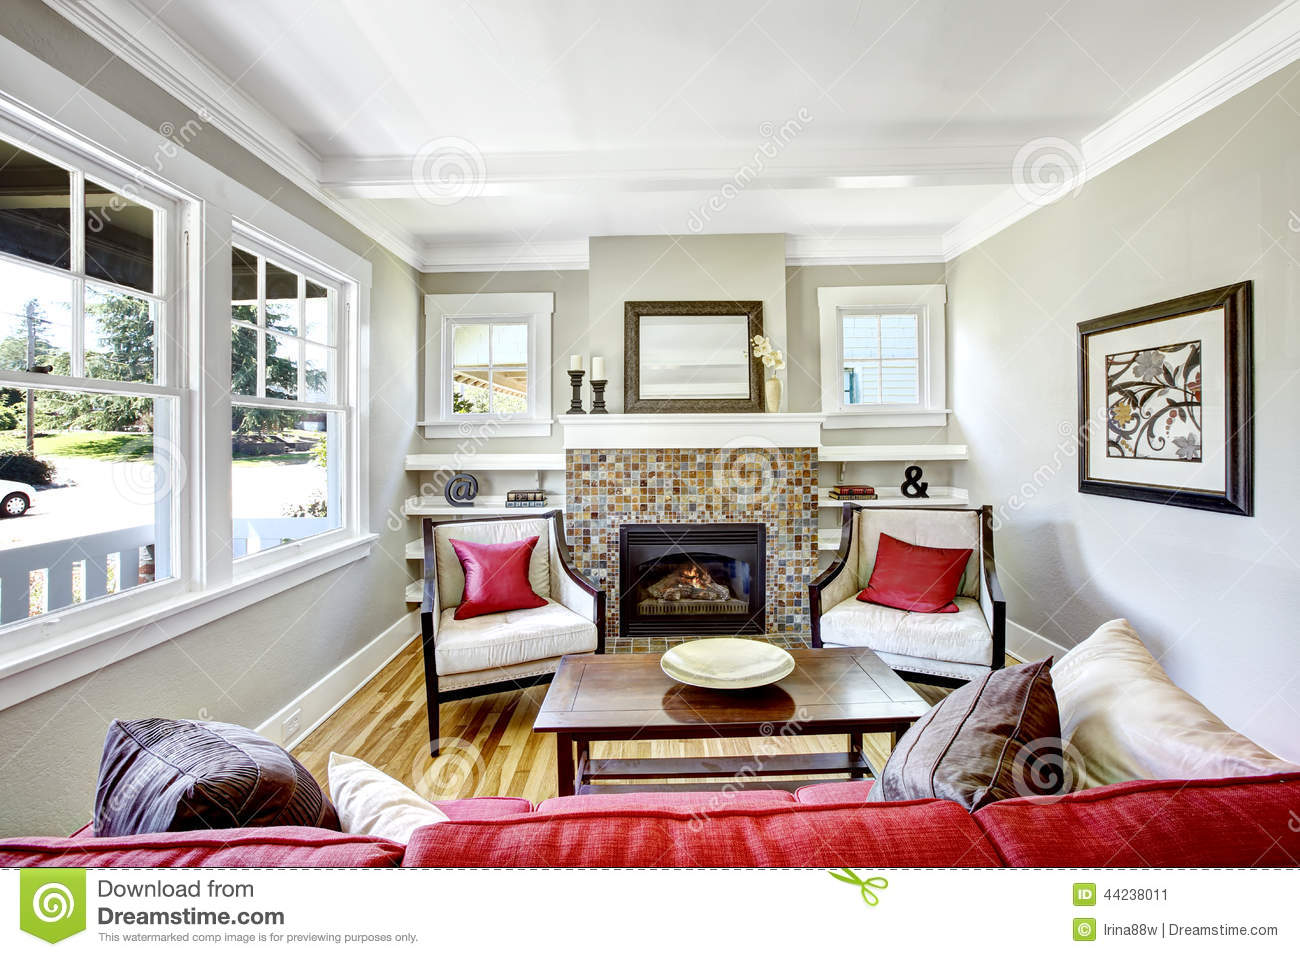 red sofa design living room and cream ideas cozy small with fireplace. stock photo - image ...